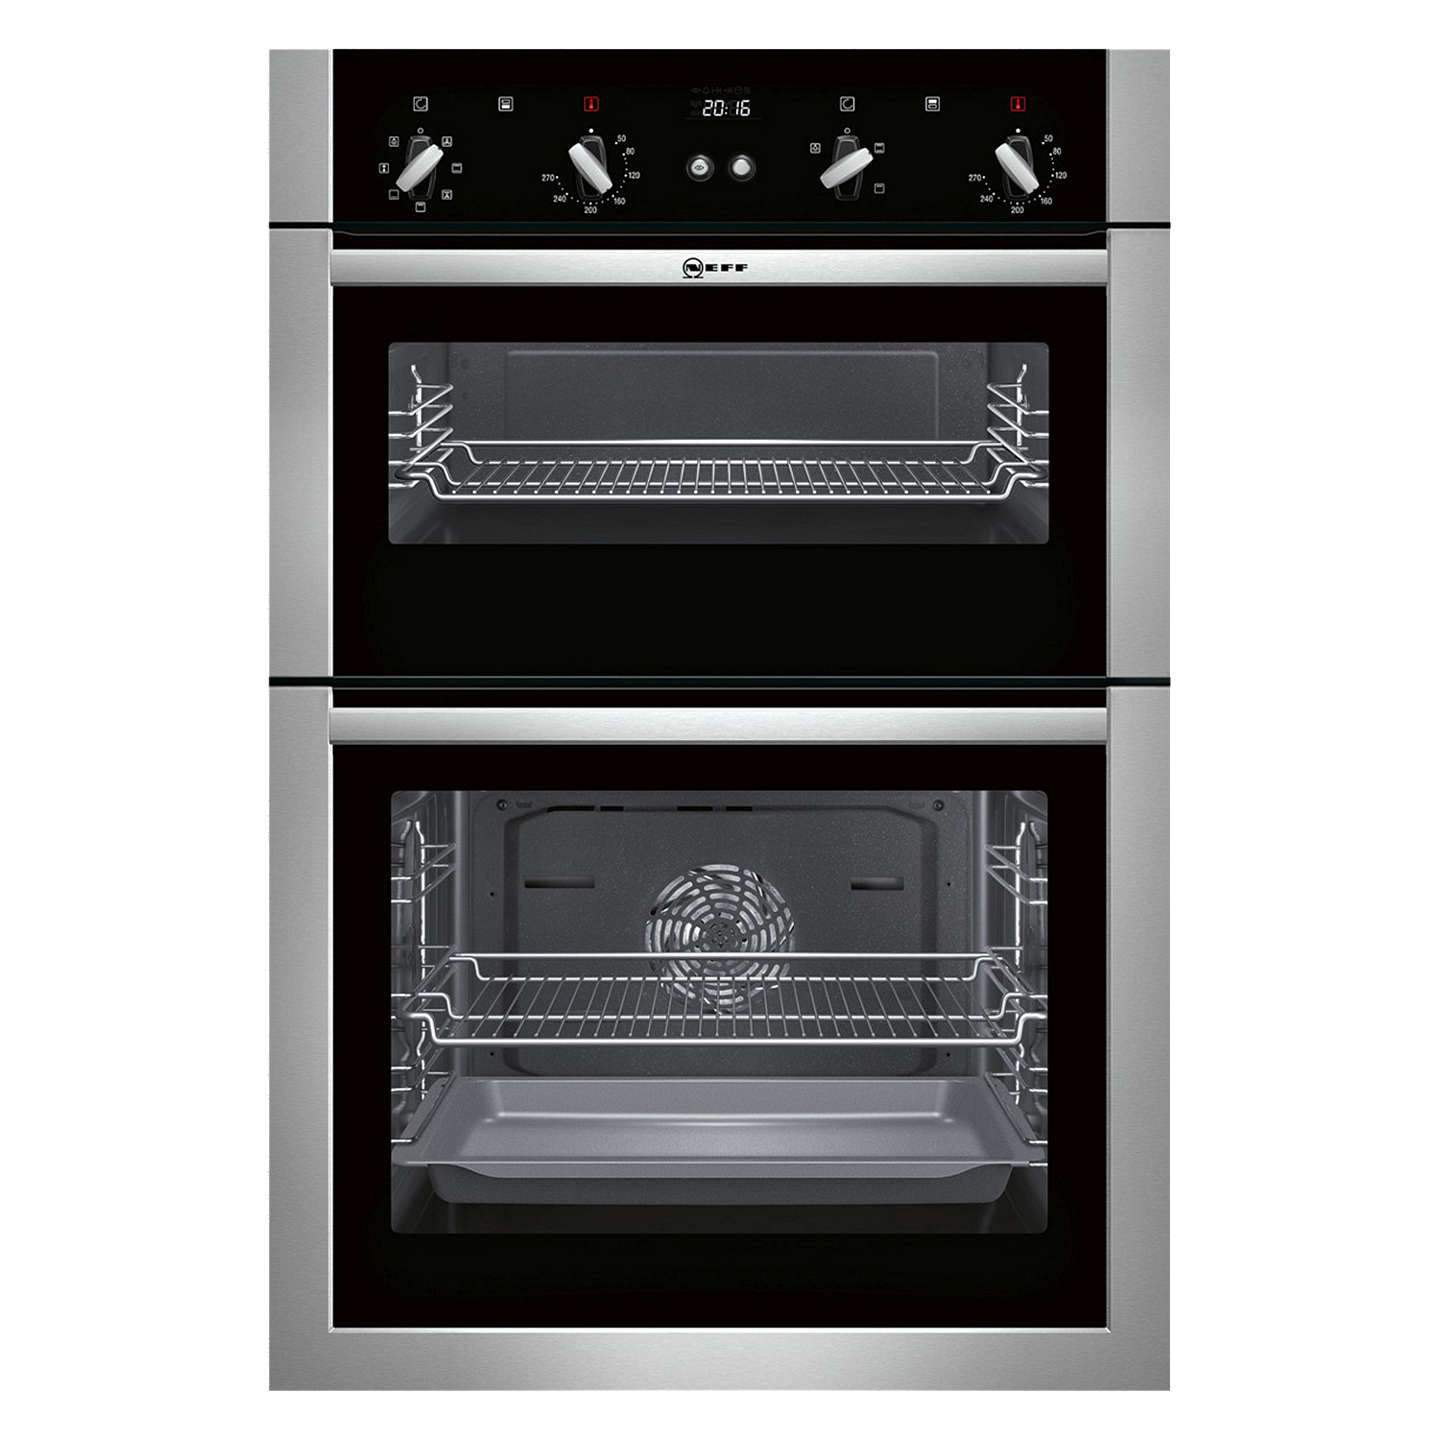 Neff U14m42n5gb Double Oven - Direct Discounts - Kitchen Appliance Specialists